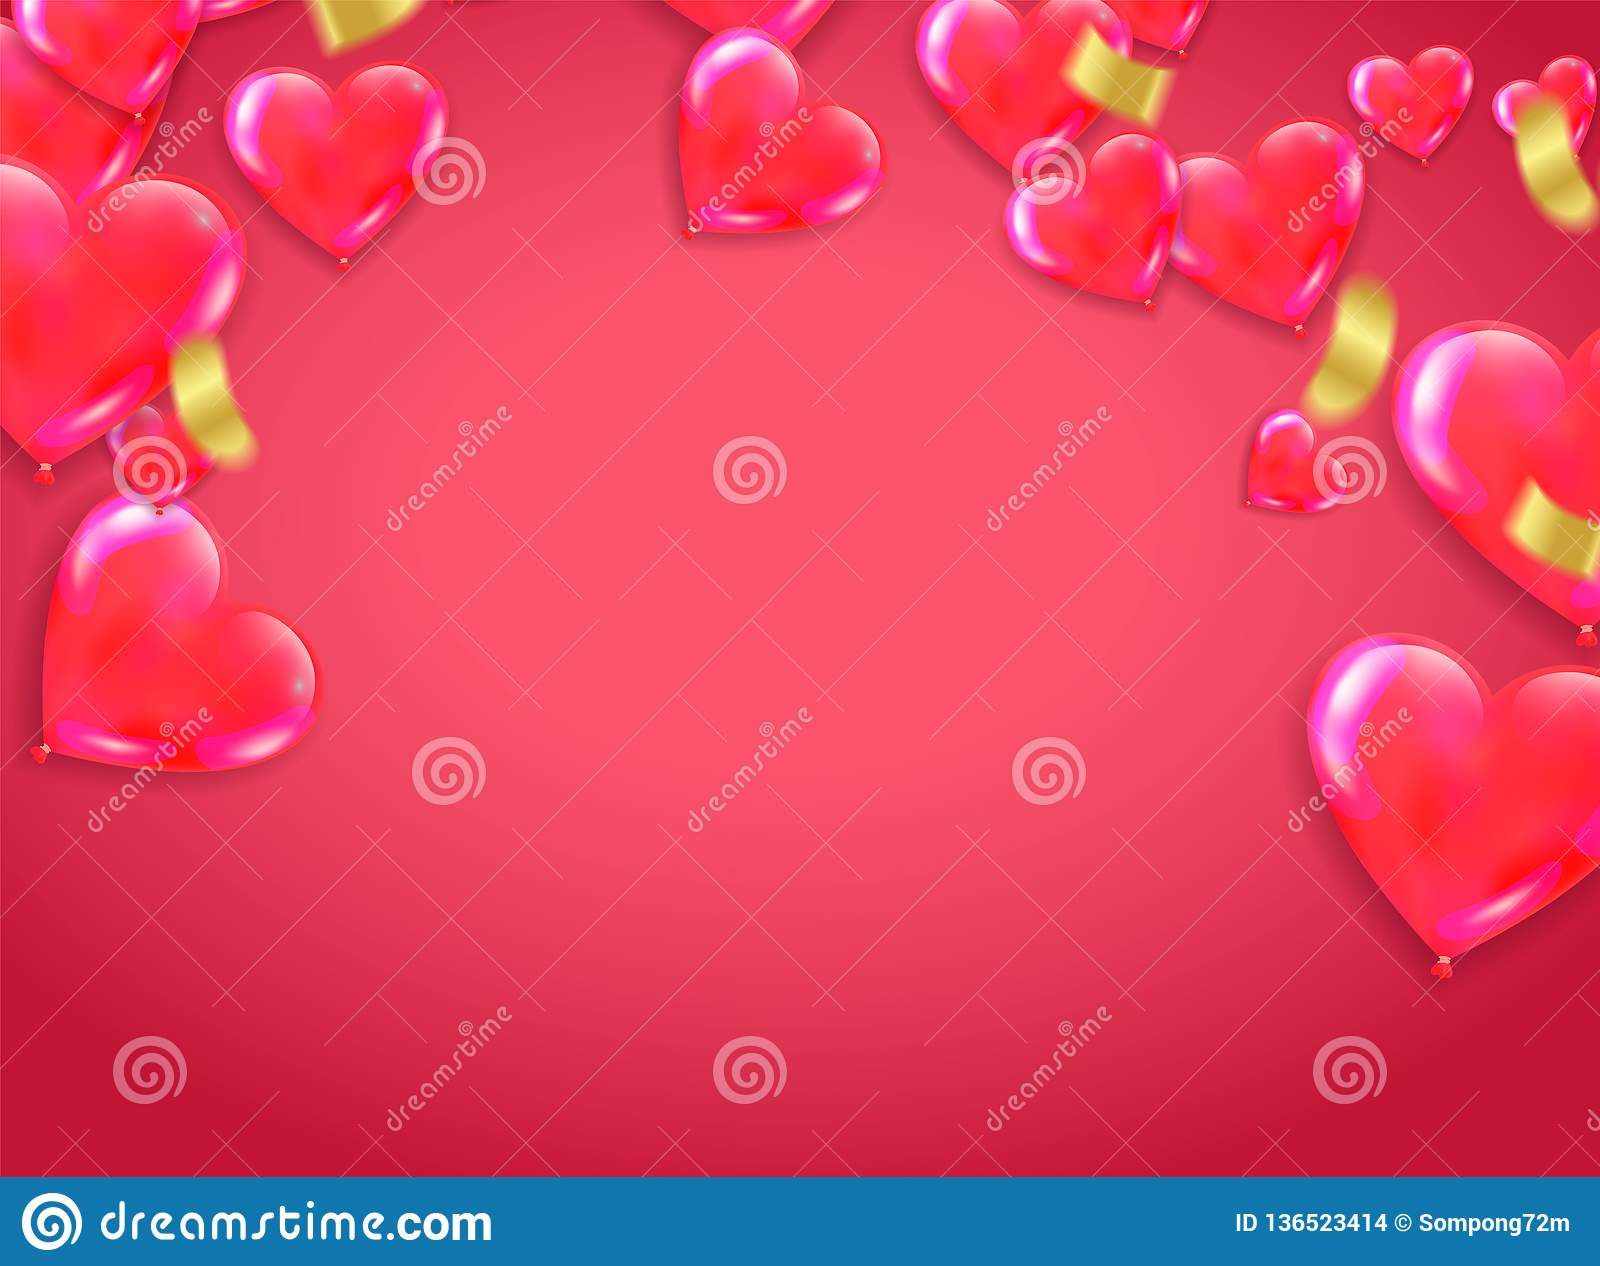 Download 43 Background Love Banner Gratis Terbaru